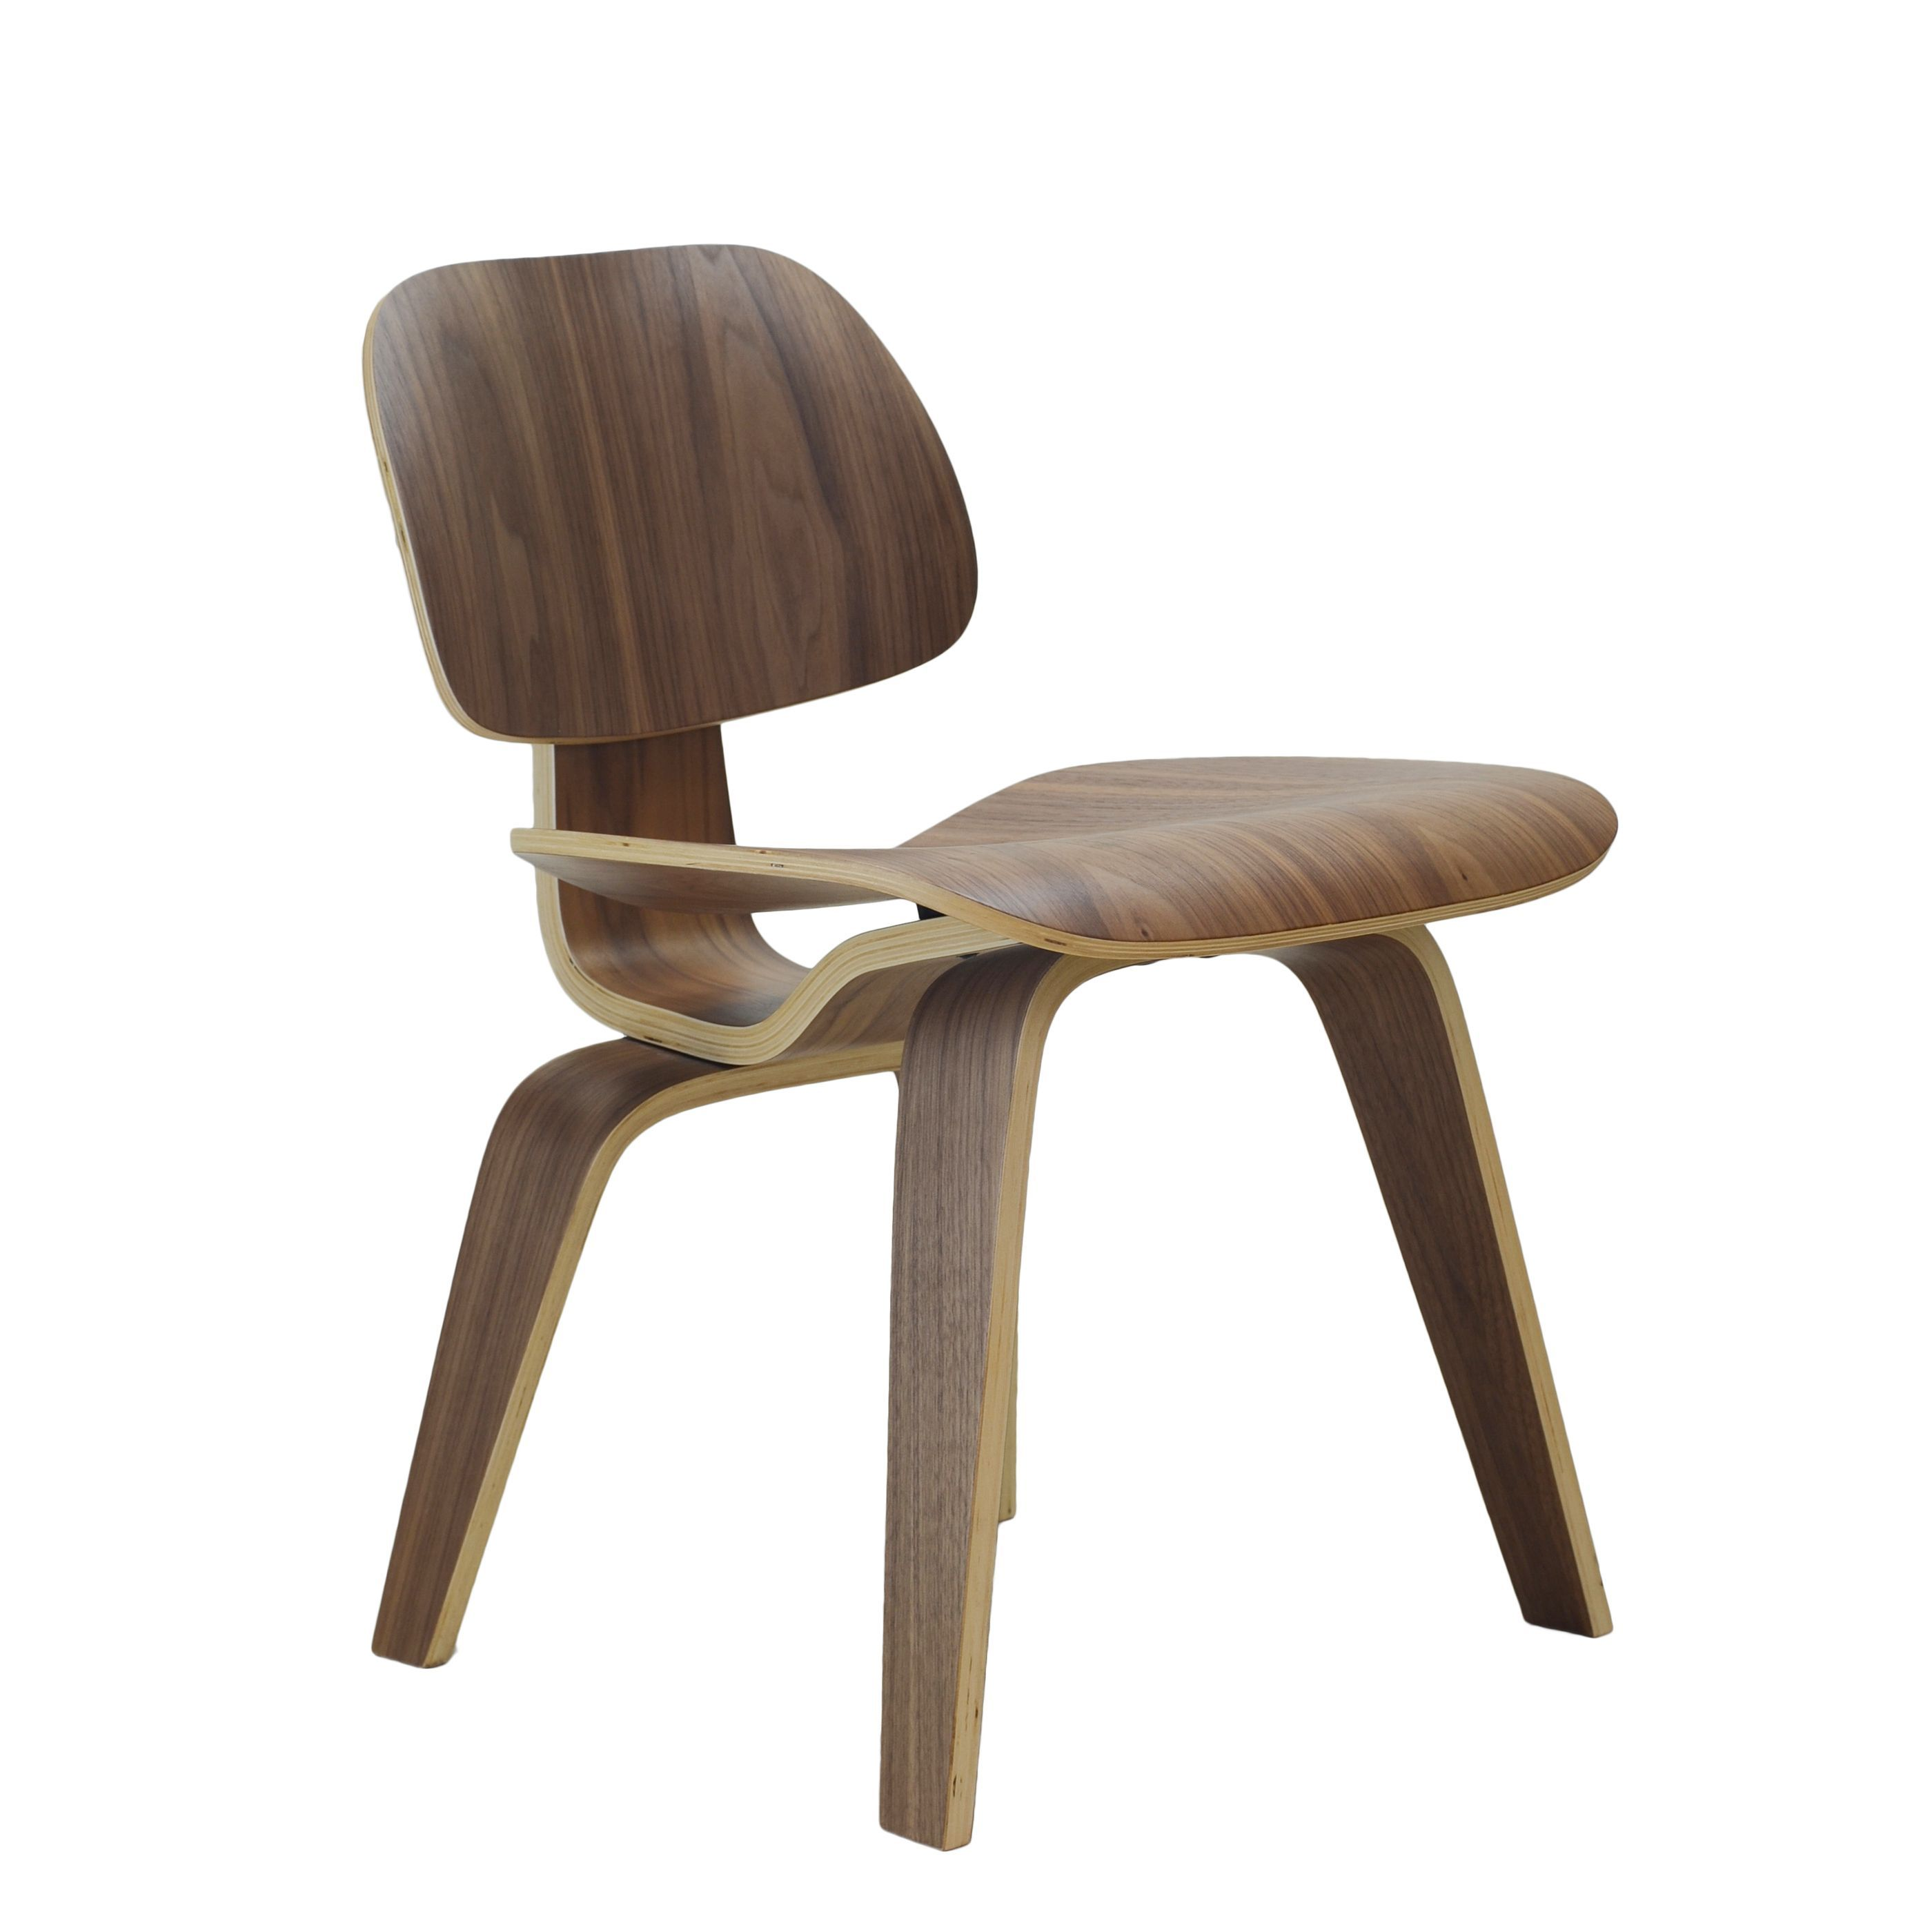 Design Tree Home Dining Chair Wood (Walnut), Brown | Woods, Outlet ...